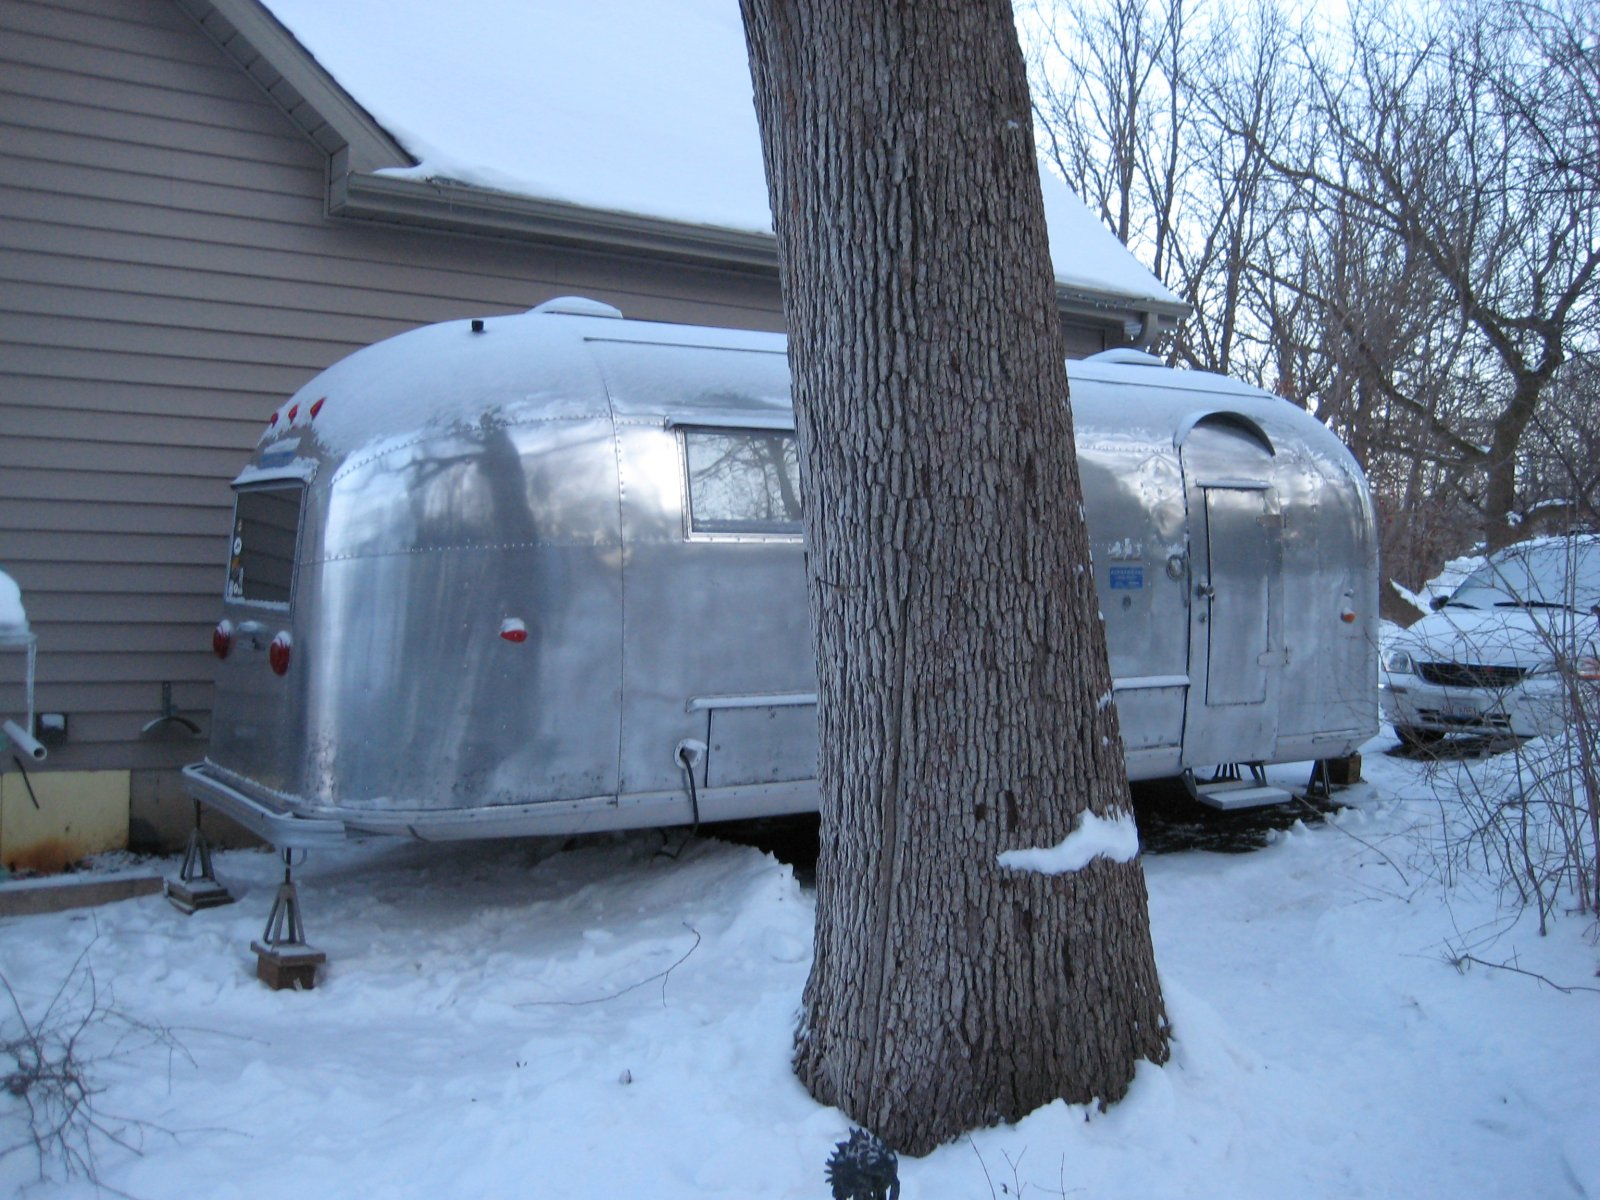 Click image for larger version  Name:Airstream 001.jpg Views:76 Size:355.9 KB ID:98294